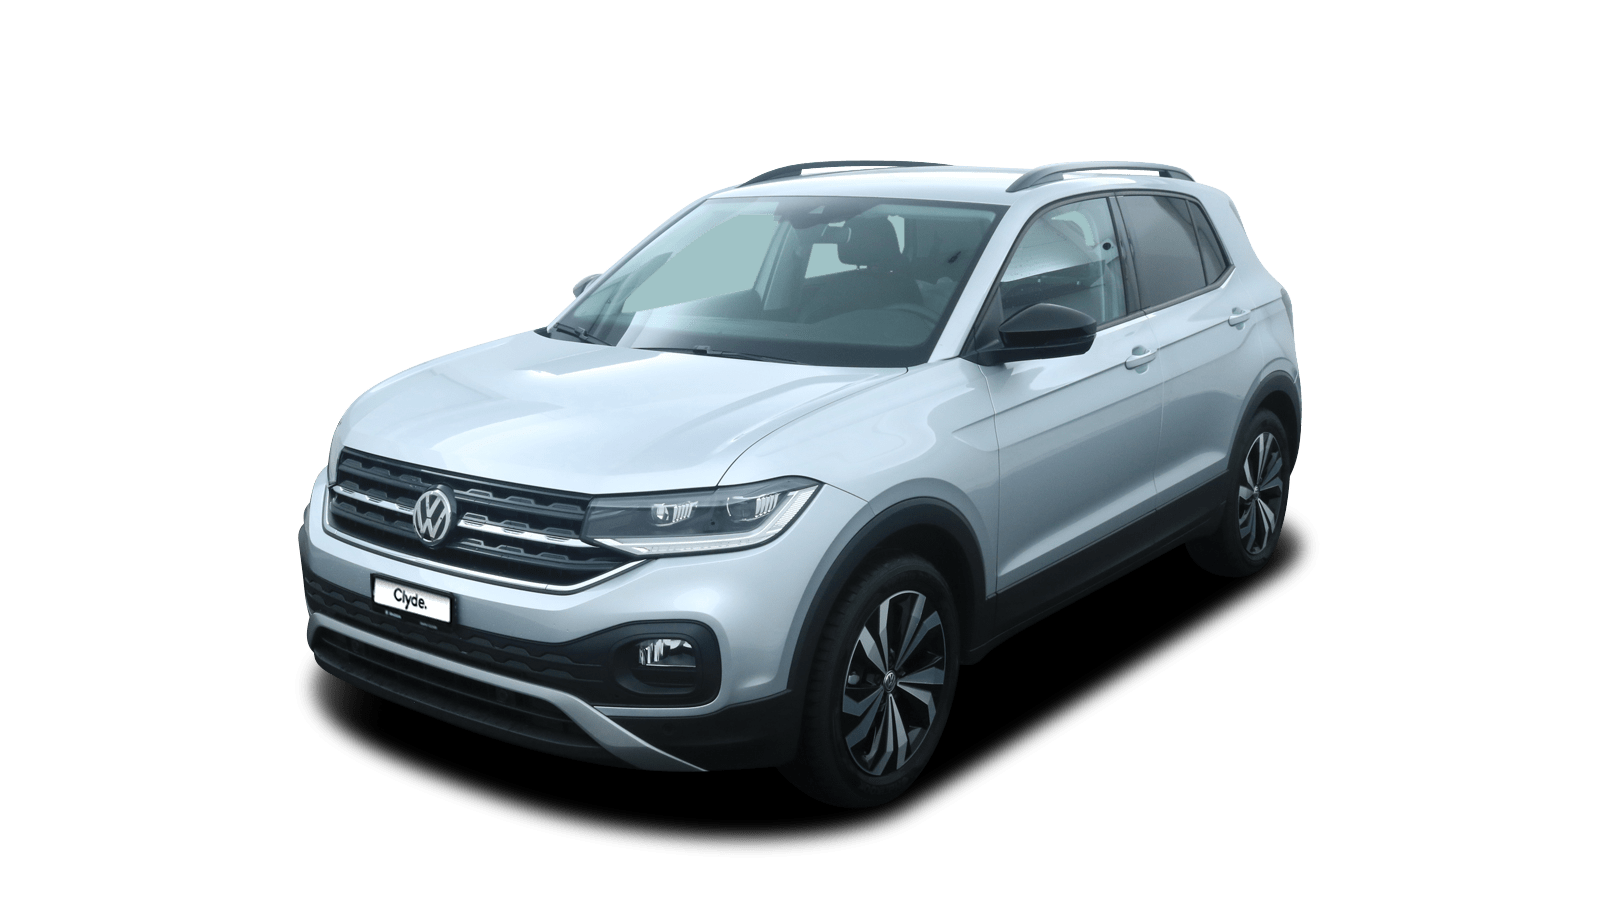 VW T-Cross Silver front - Clyde car subscription